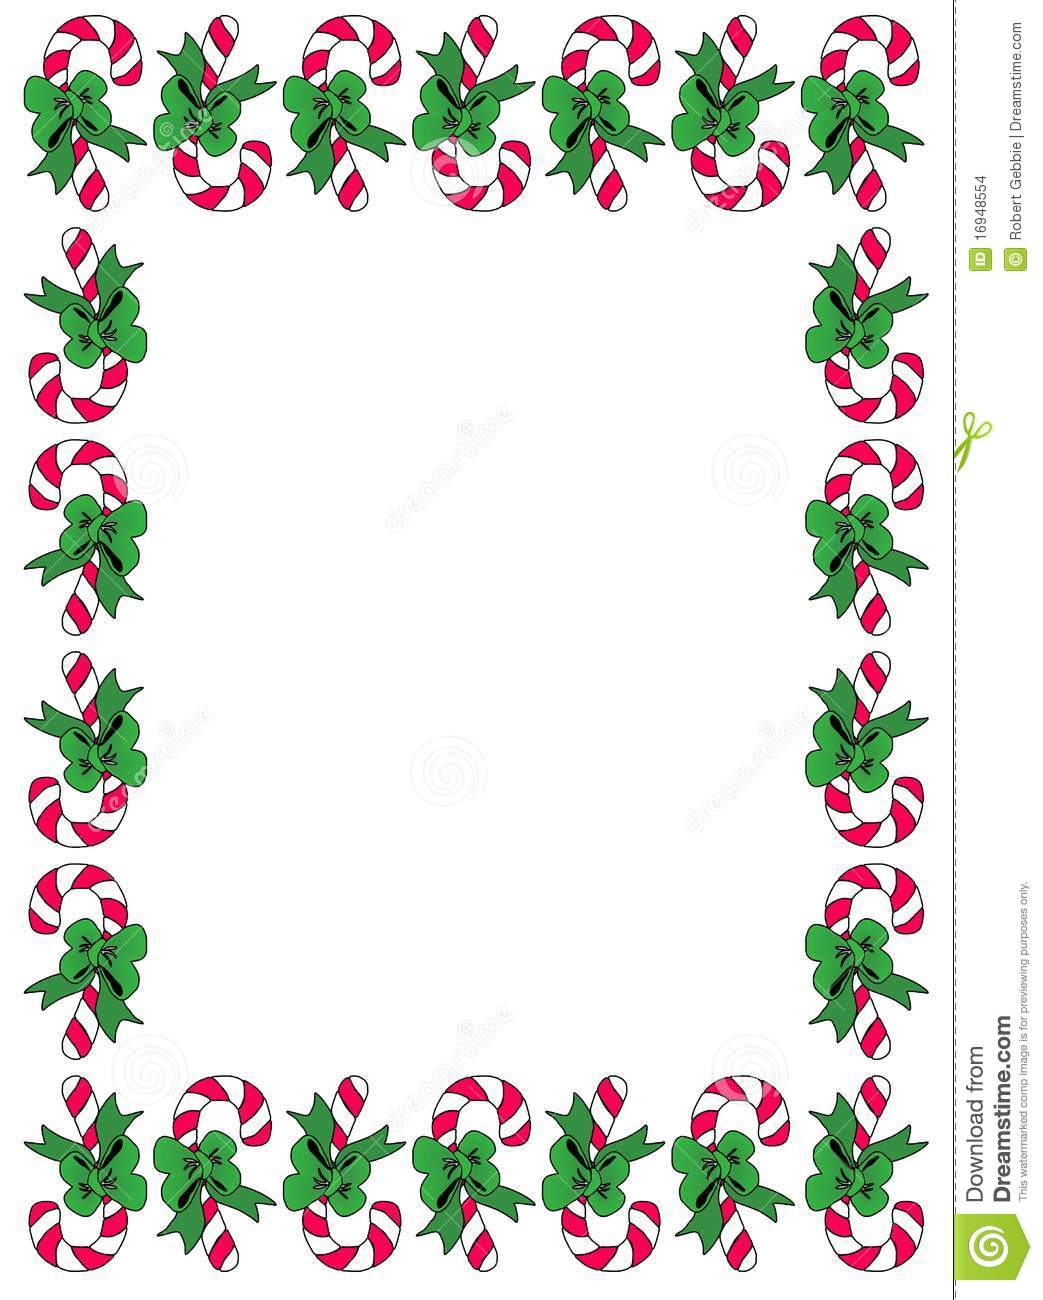 Candycane Border stock vector. Illustration of christmas.